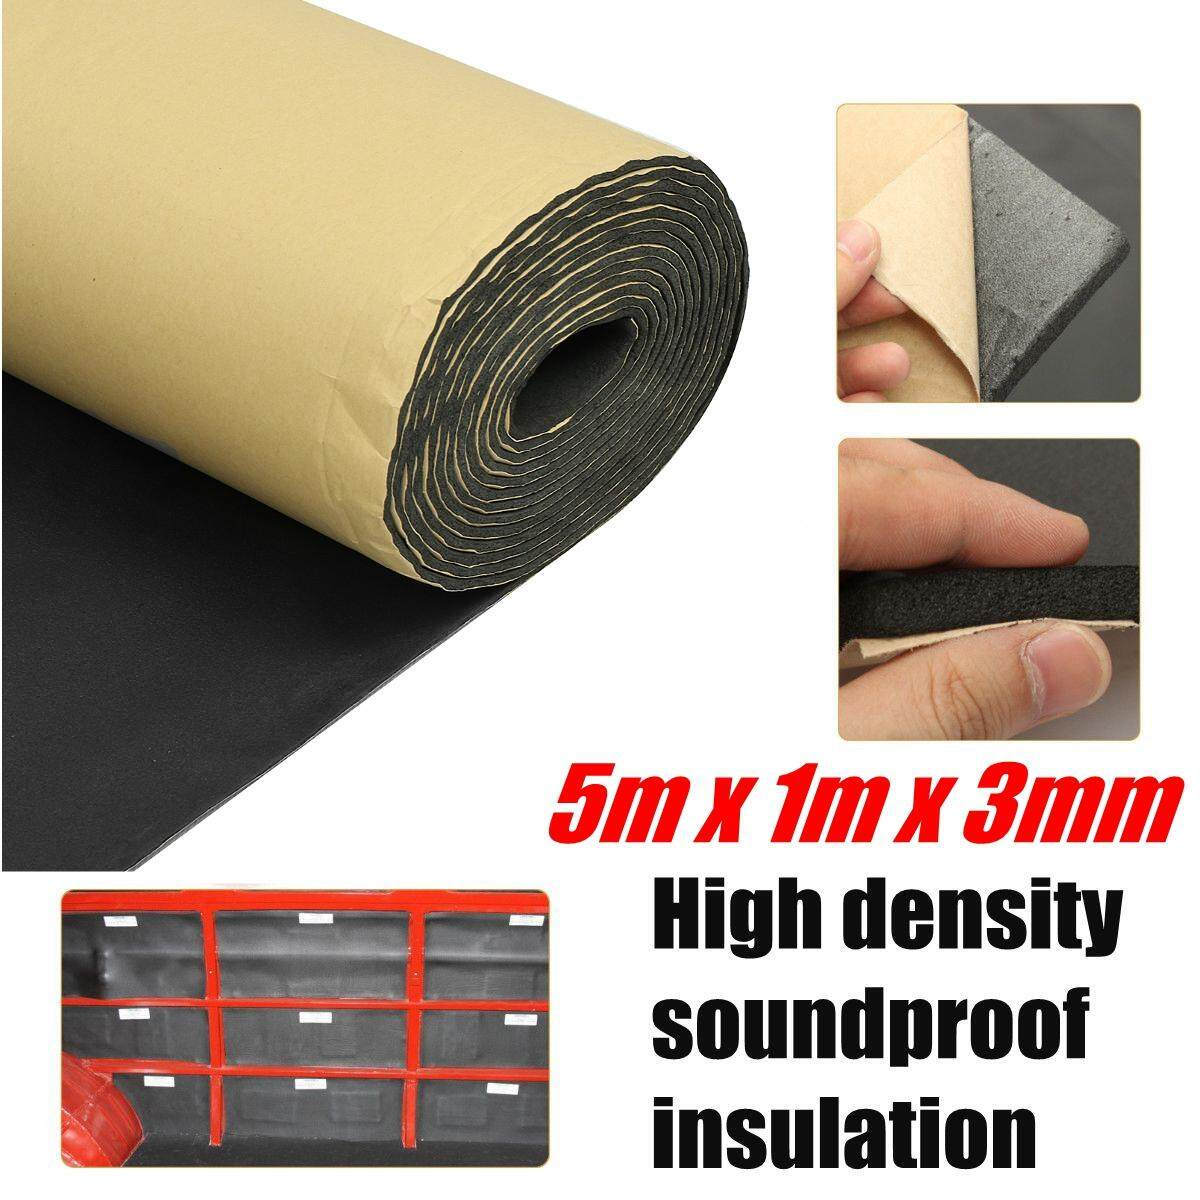 5m Roll Car Sound Proofing Deadening Motorhome Van Insulation Closed Cell Foam By Audew.